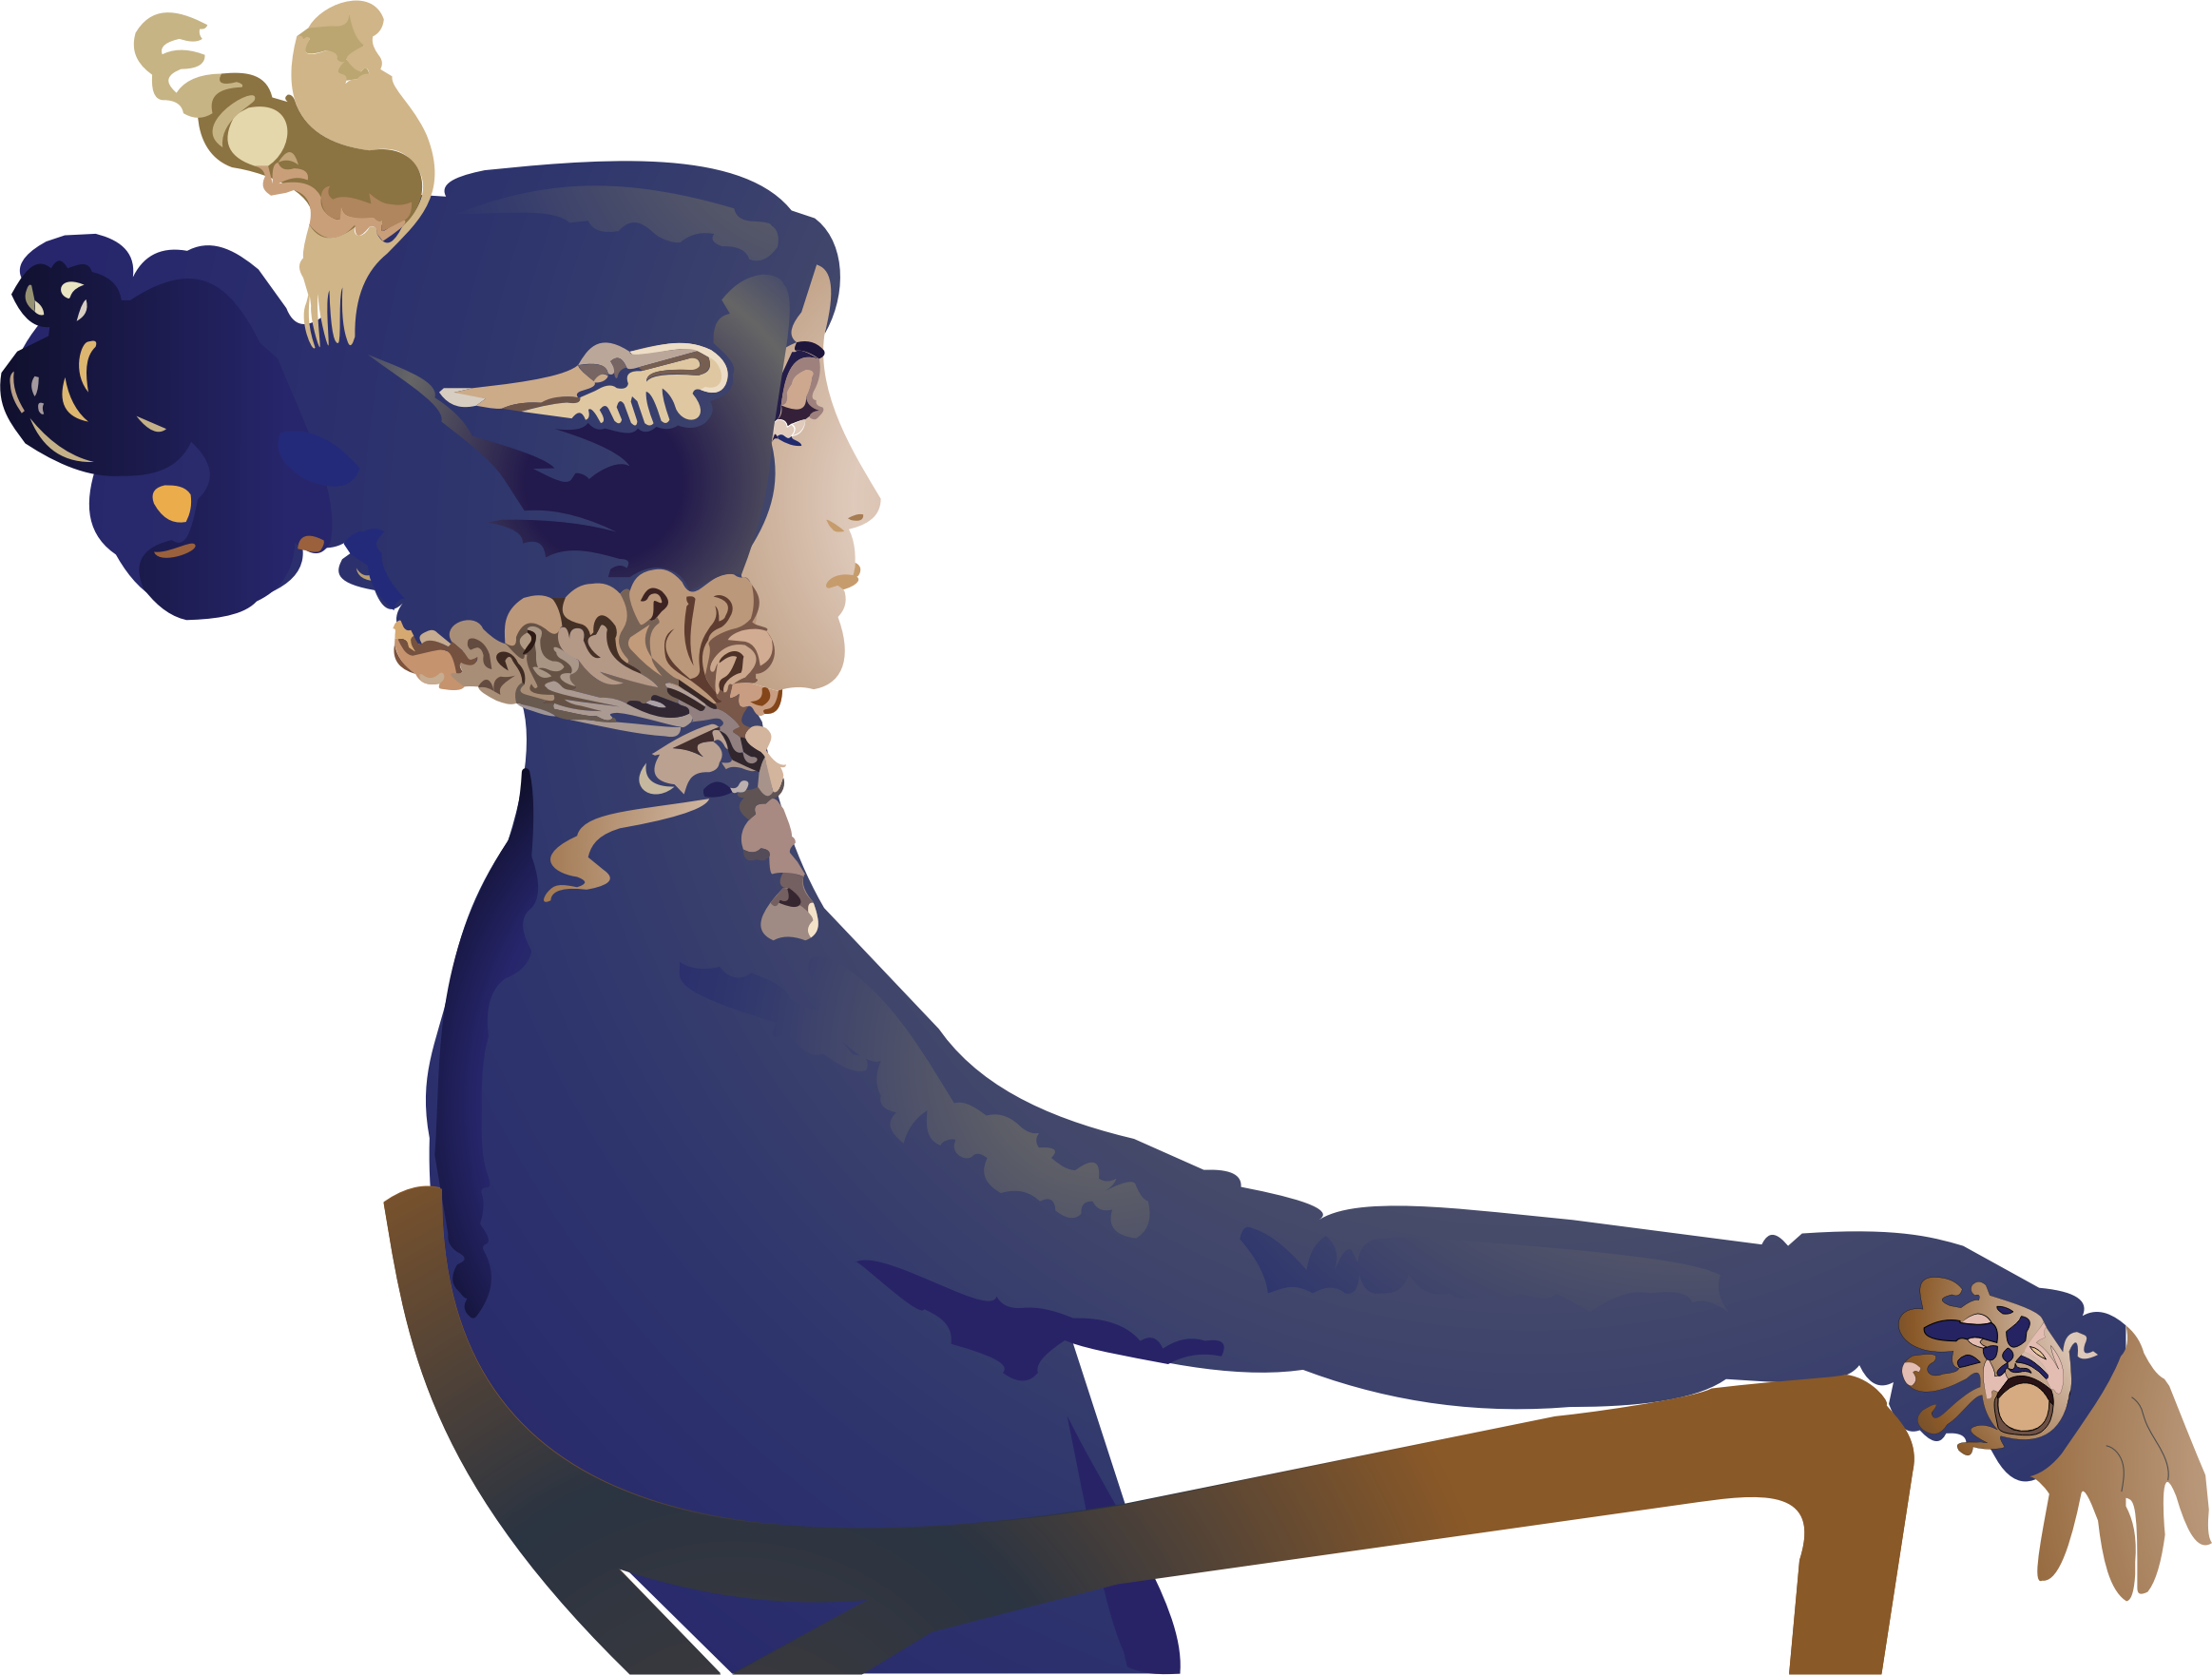 Woman sittnig in a chair with crown clipart clipart transparent stock Clipart - Woman Sitting In Chair clipart transparent stock